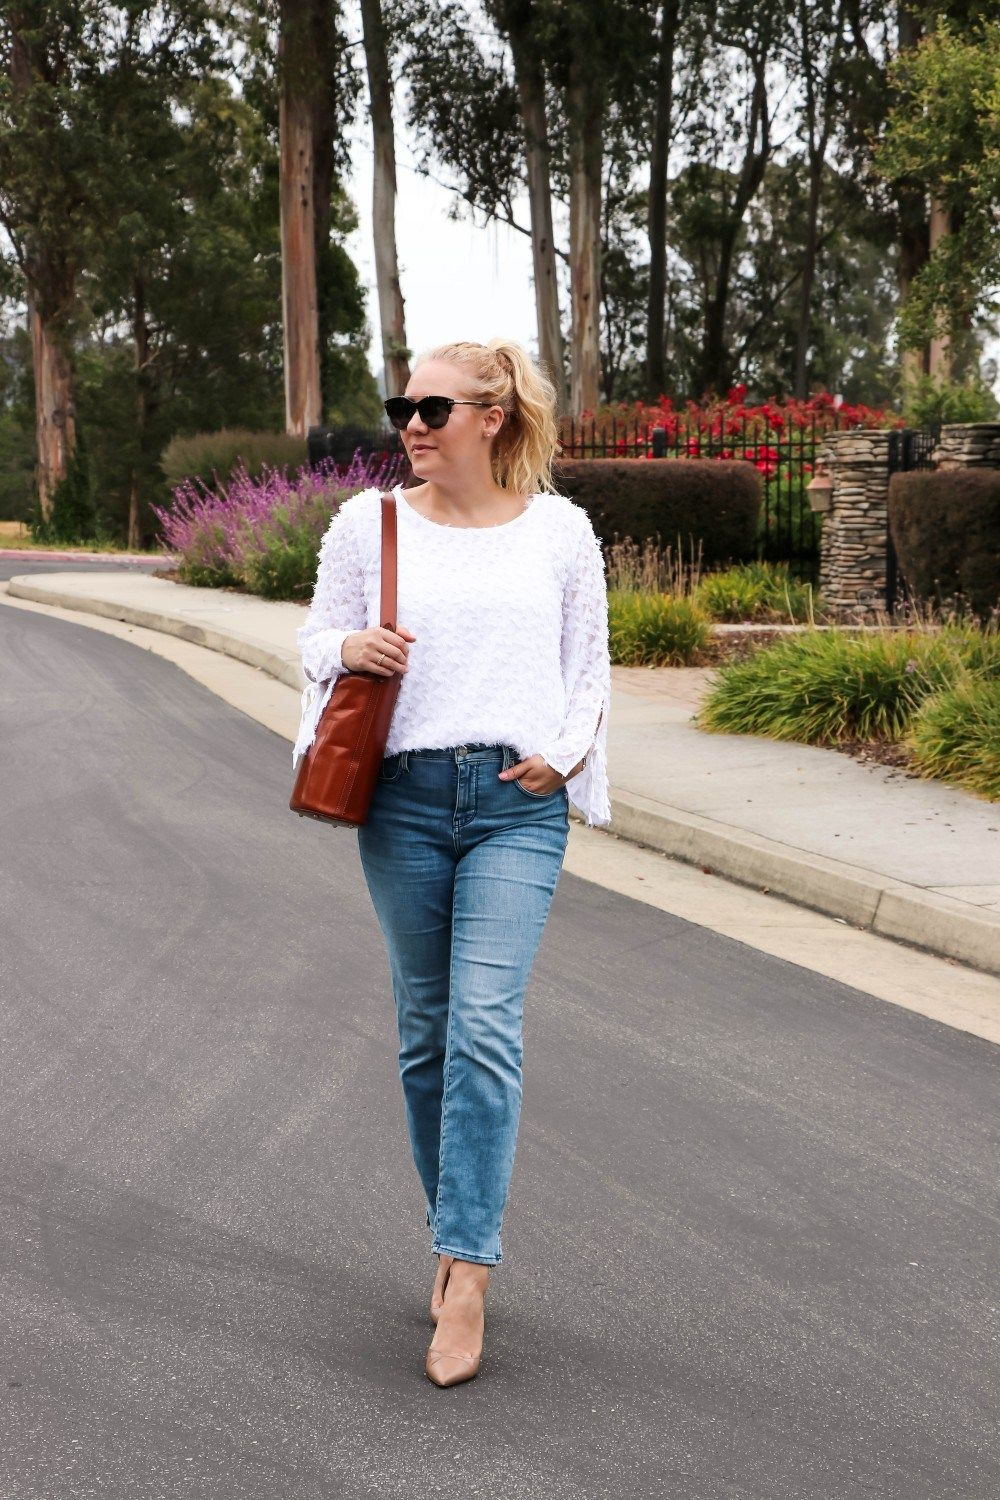 Sharing how I styled this clip dot blouse for day to night on Have Need Want! Head on over to the post to see both looks. #daytonight #stylingtips #outfitinspo #outfitinspiration #workwear #workwearoutfits